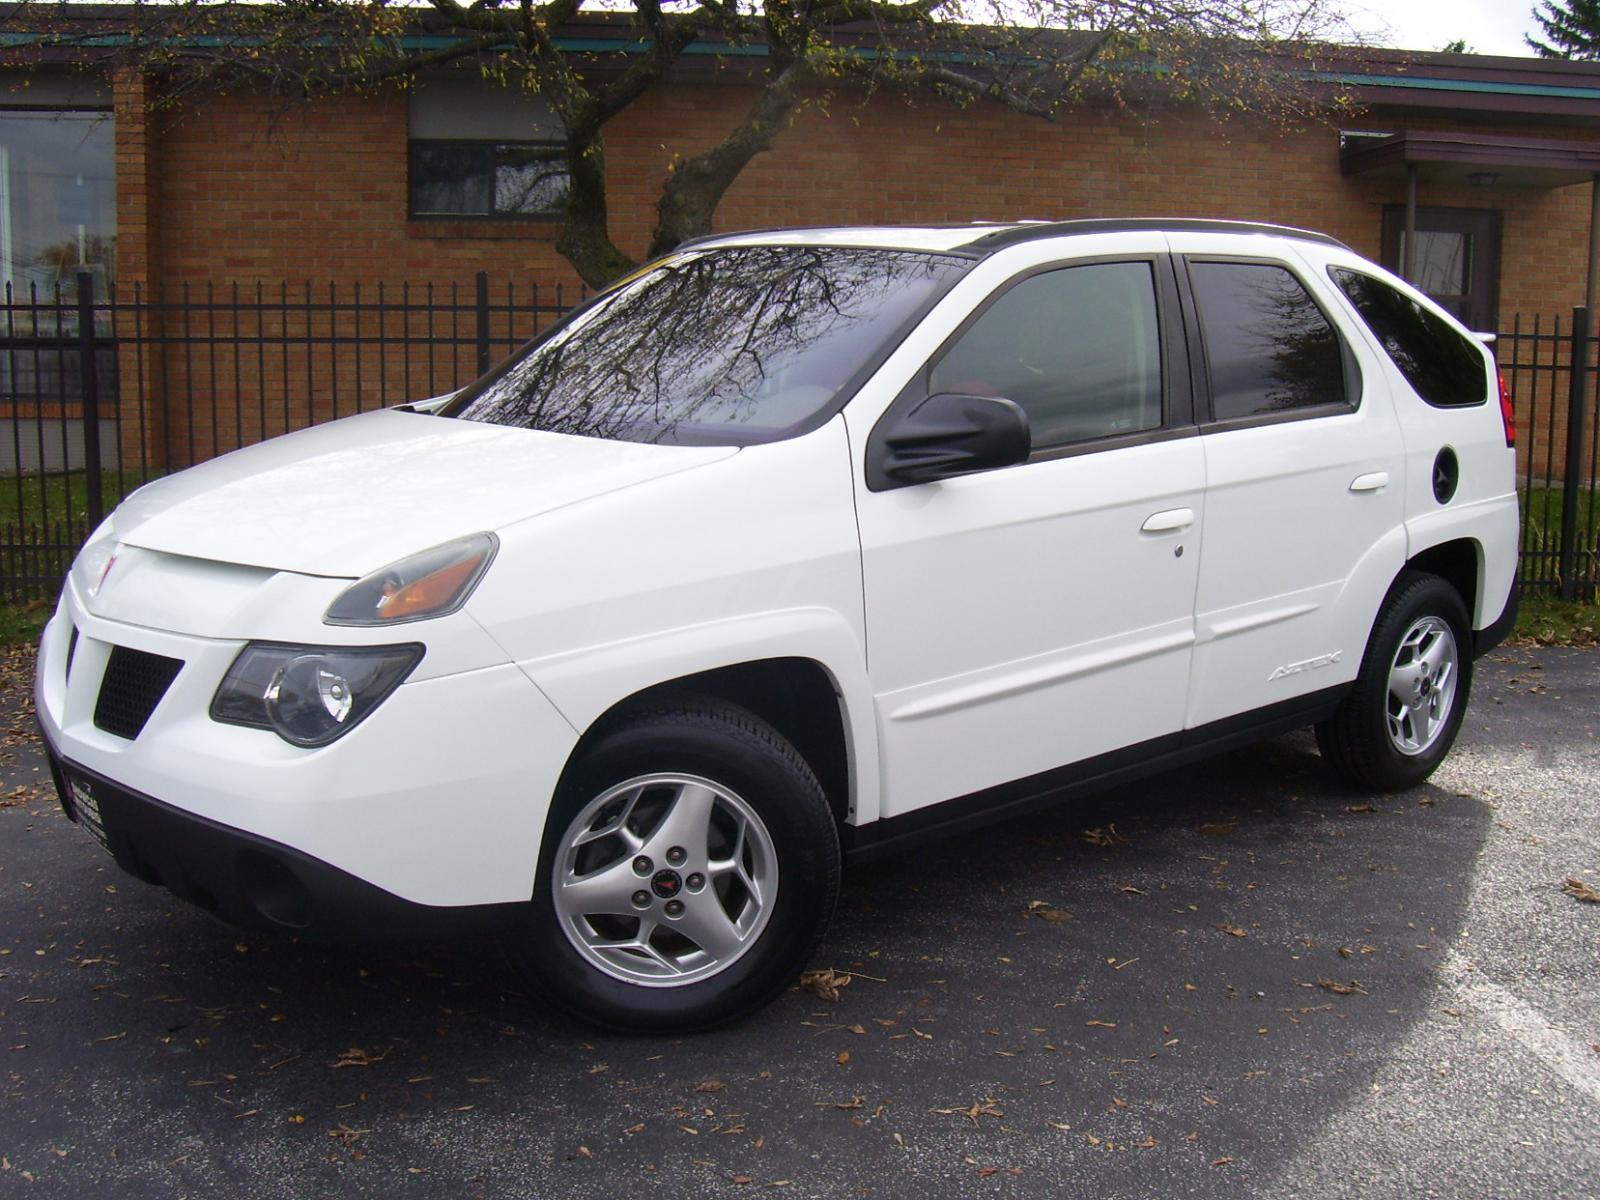 2004 pontiac aztek information and photos zombiedrive. Black Bedroom Furniture Sets. Home Design Ideas